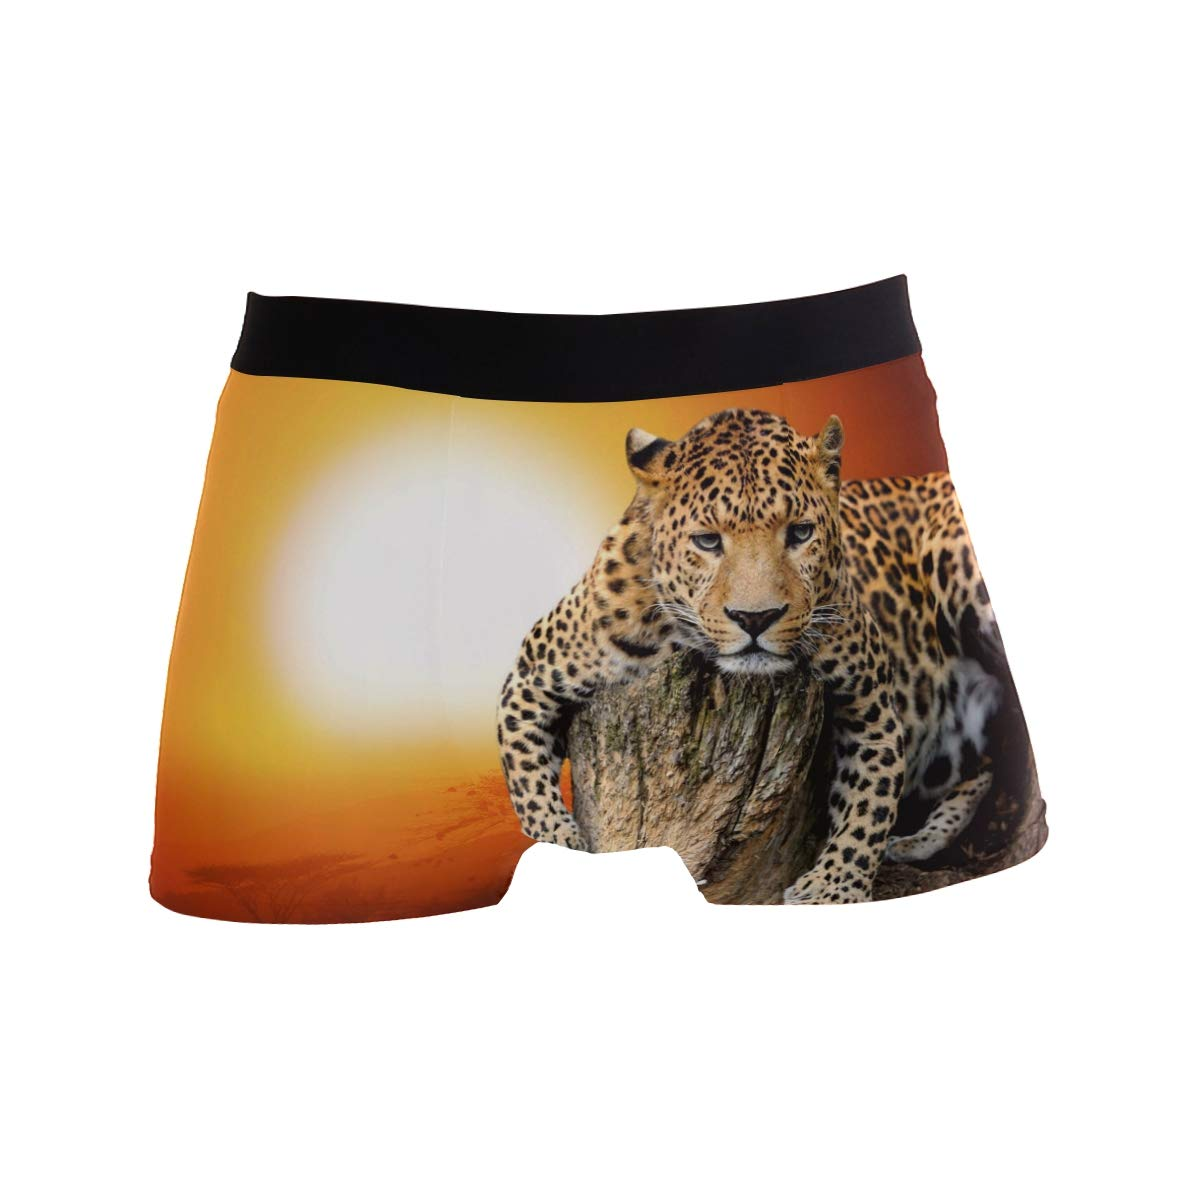 Mens Boxer Briefs Underpants Leopard Pattern Underwear for Men Adult